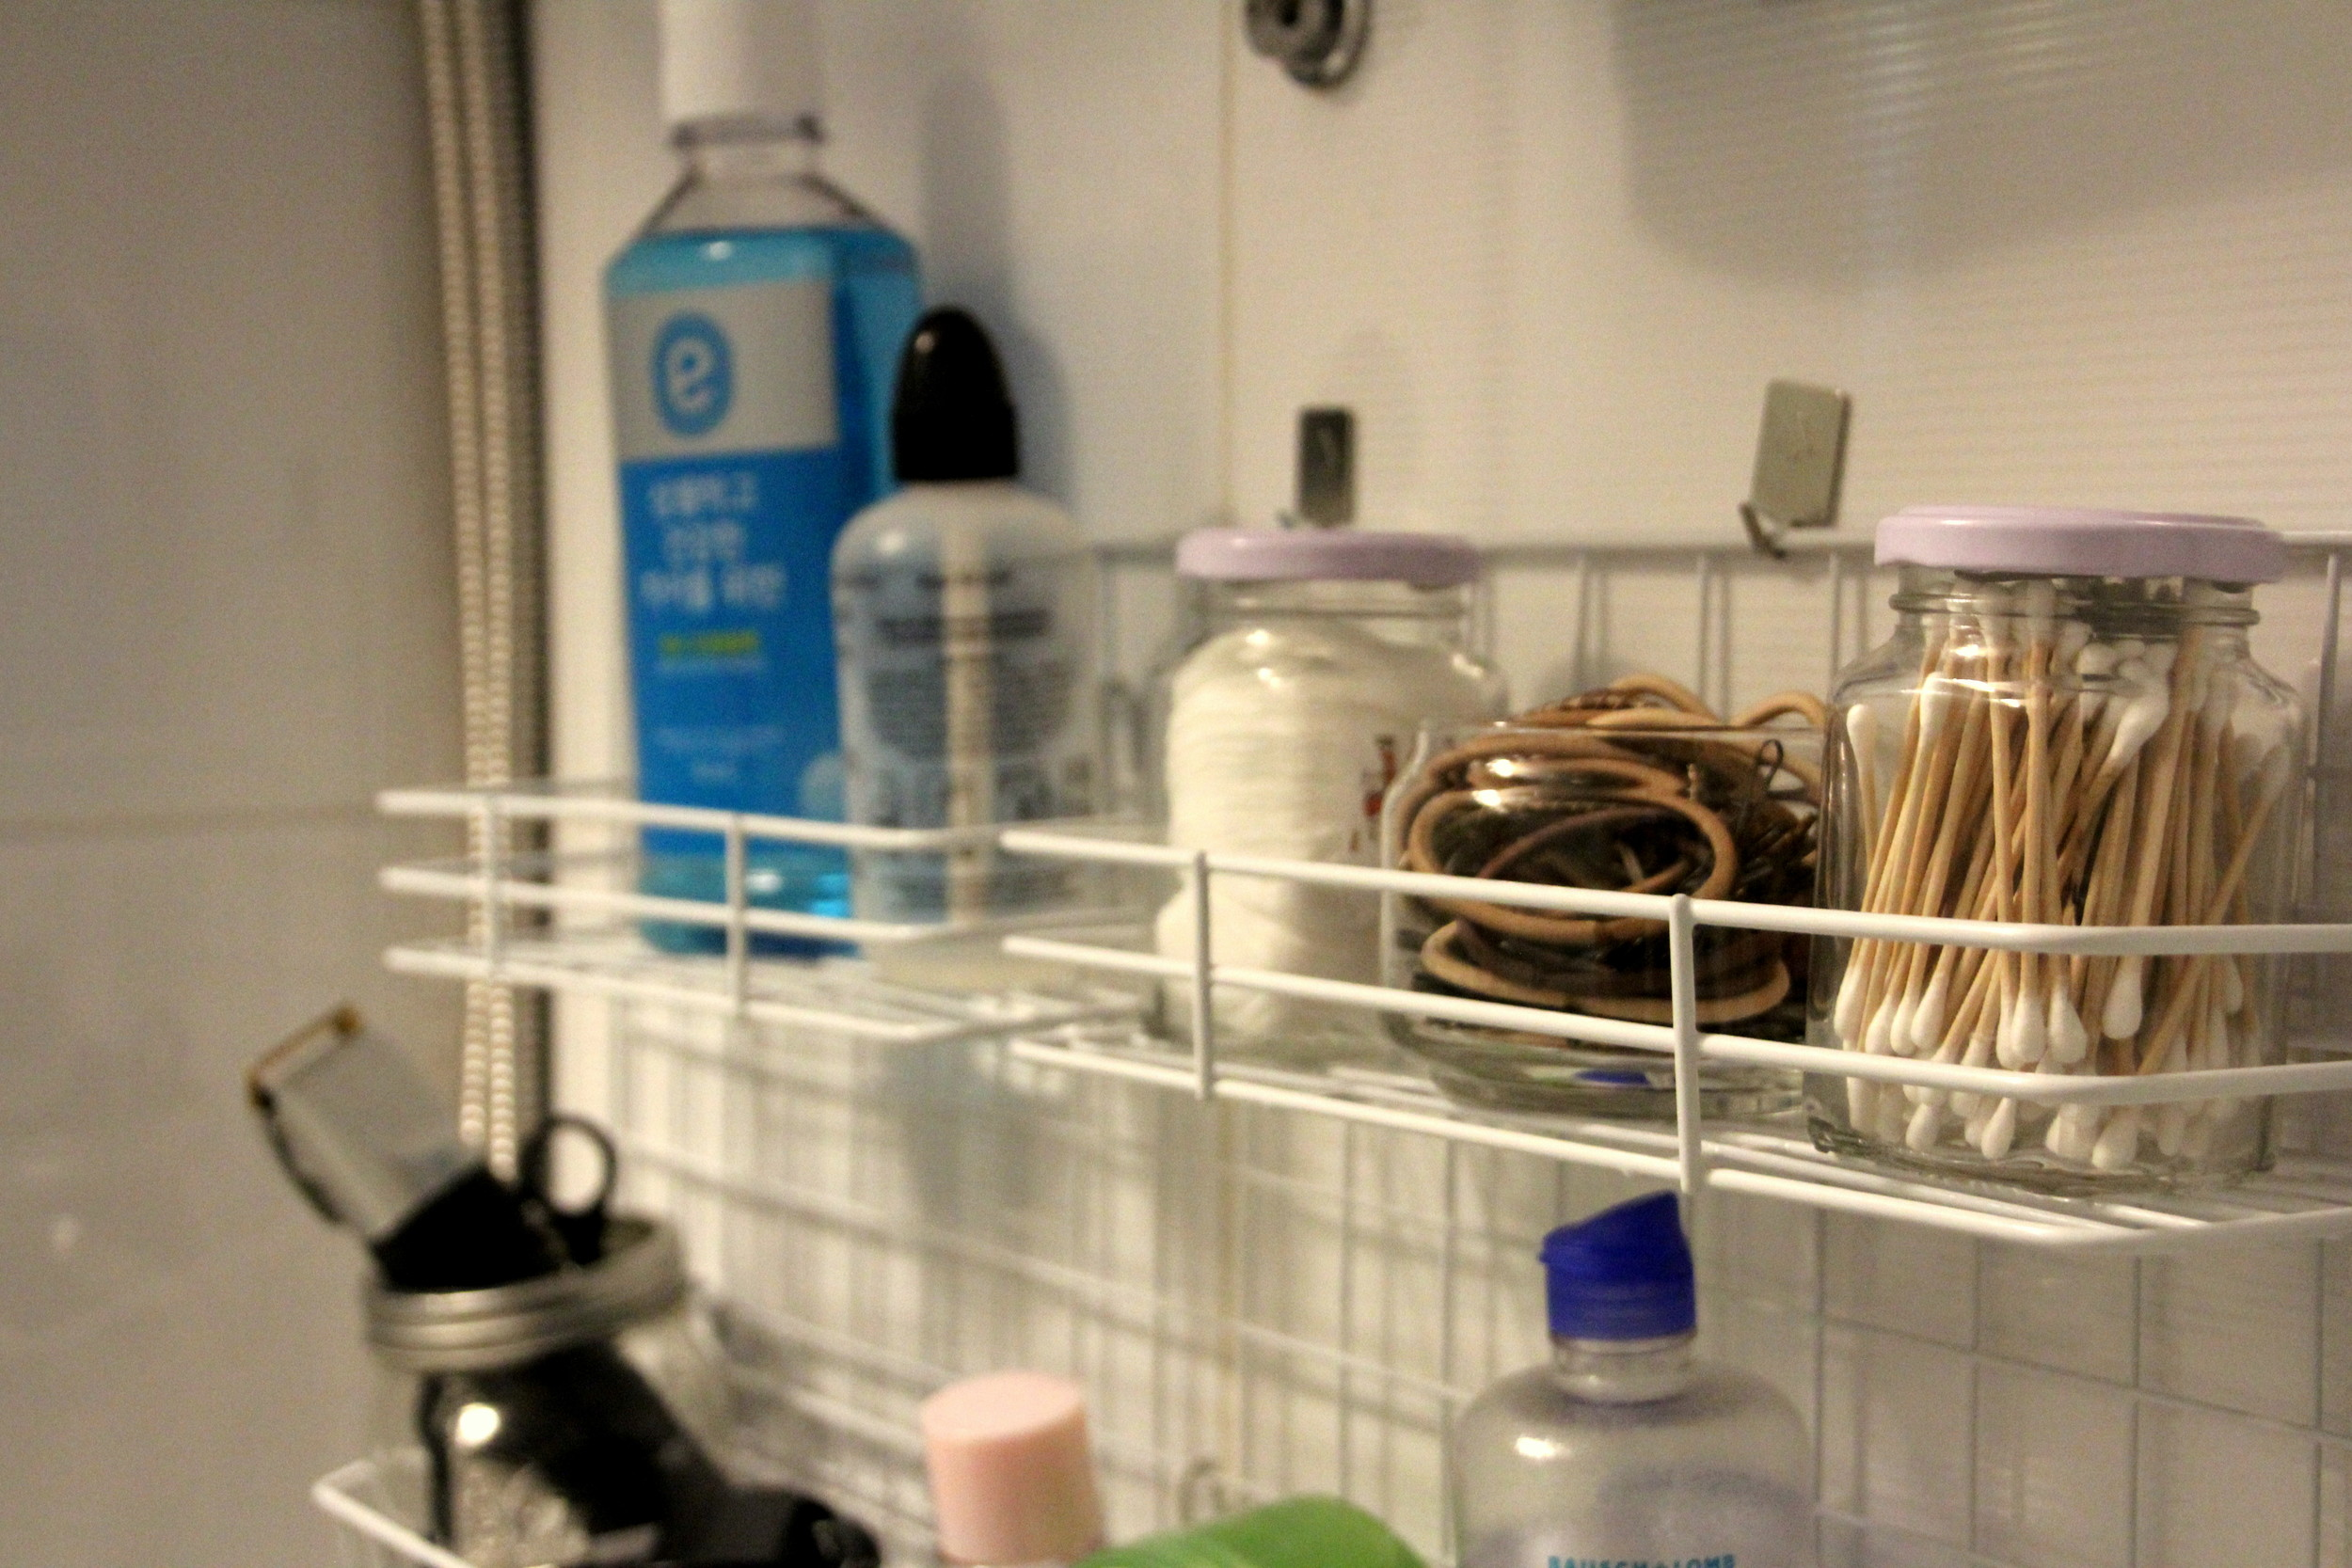 How to organize small spaces: Bathroom edition